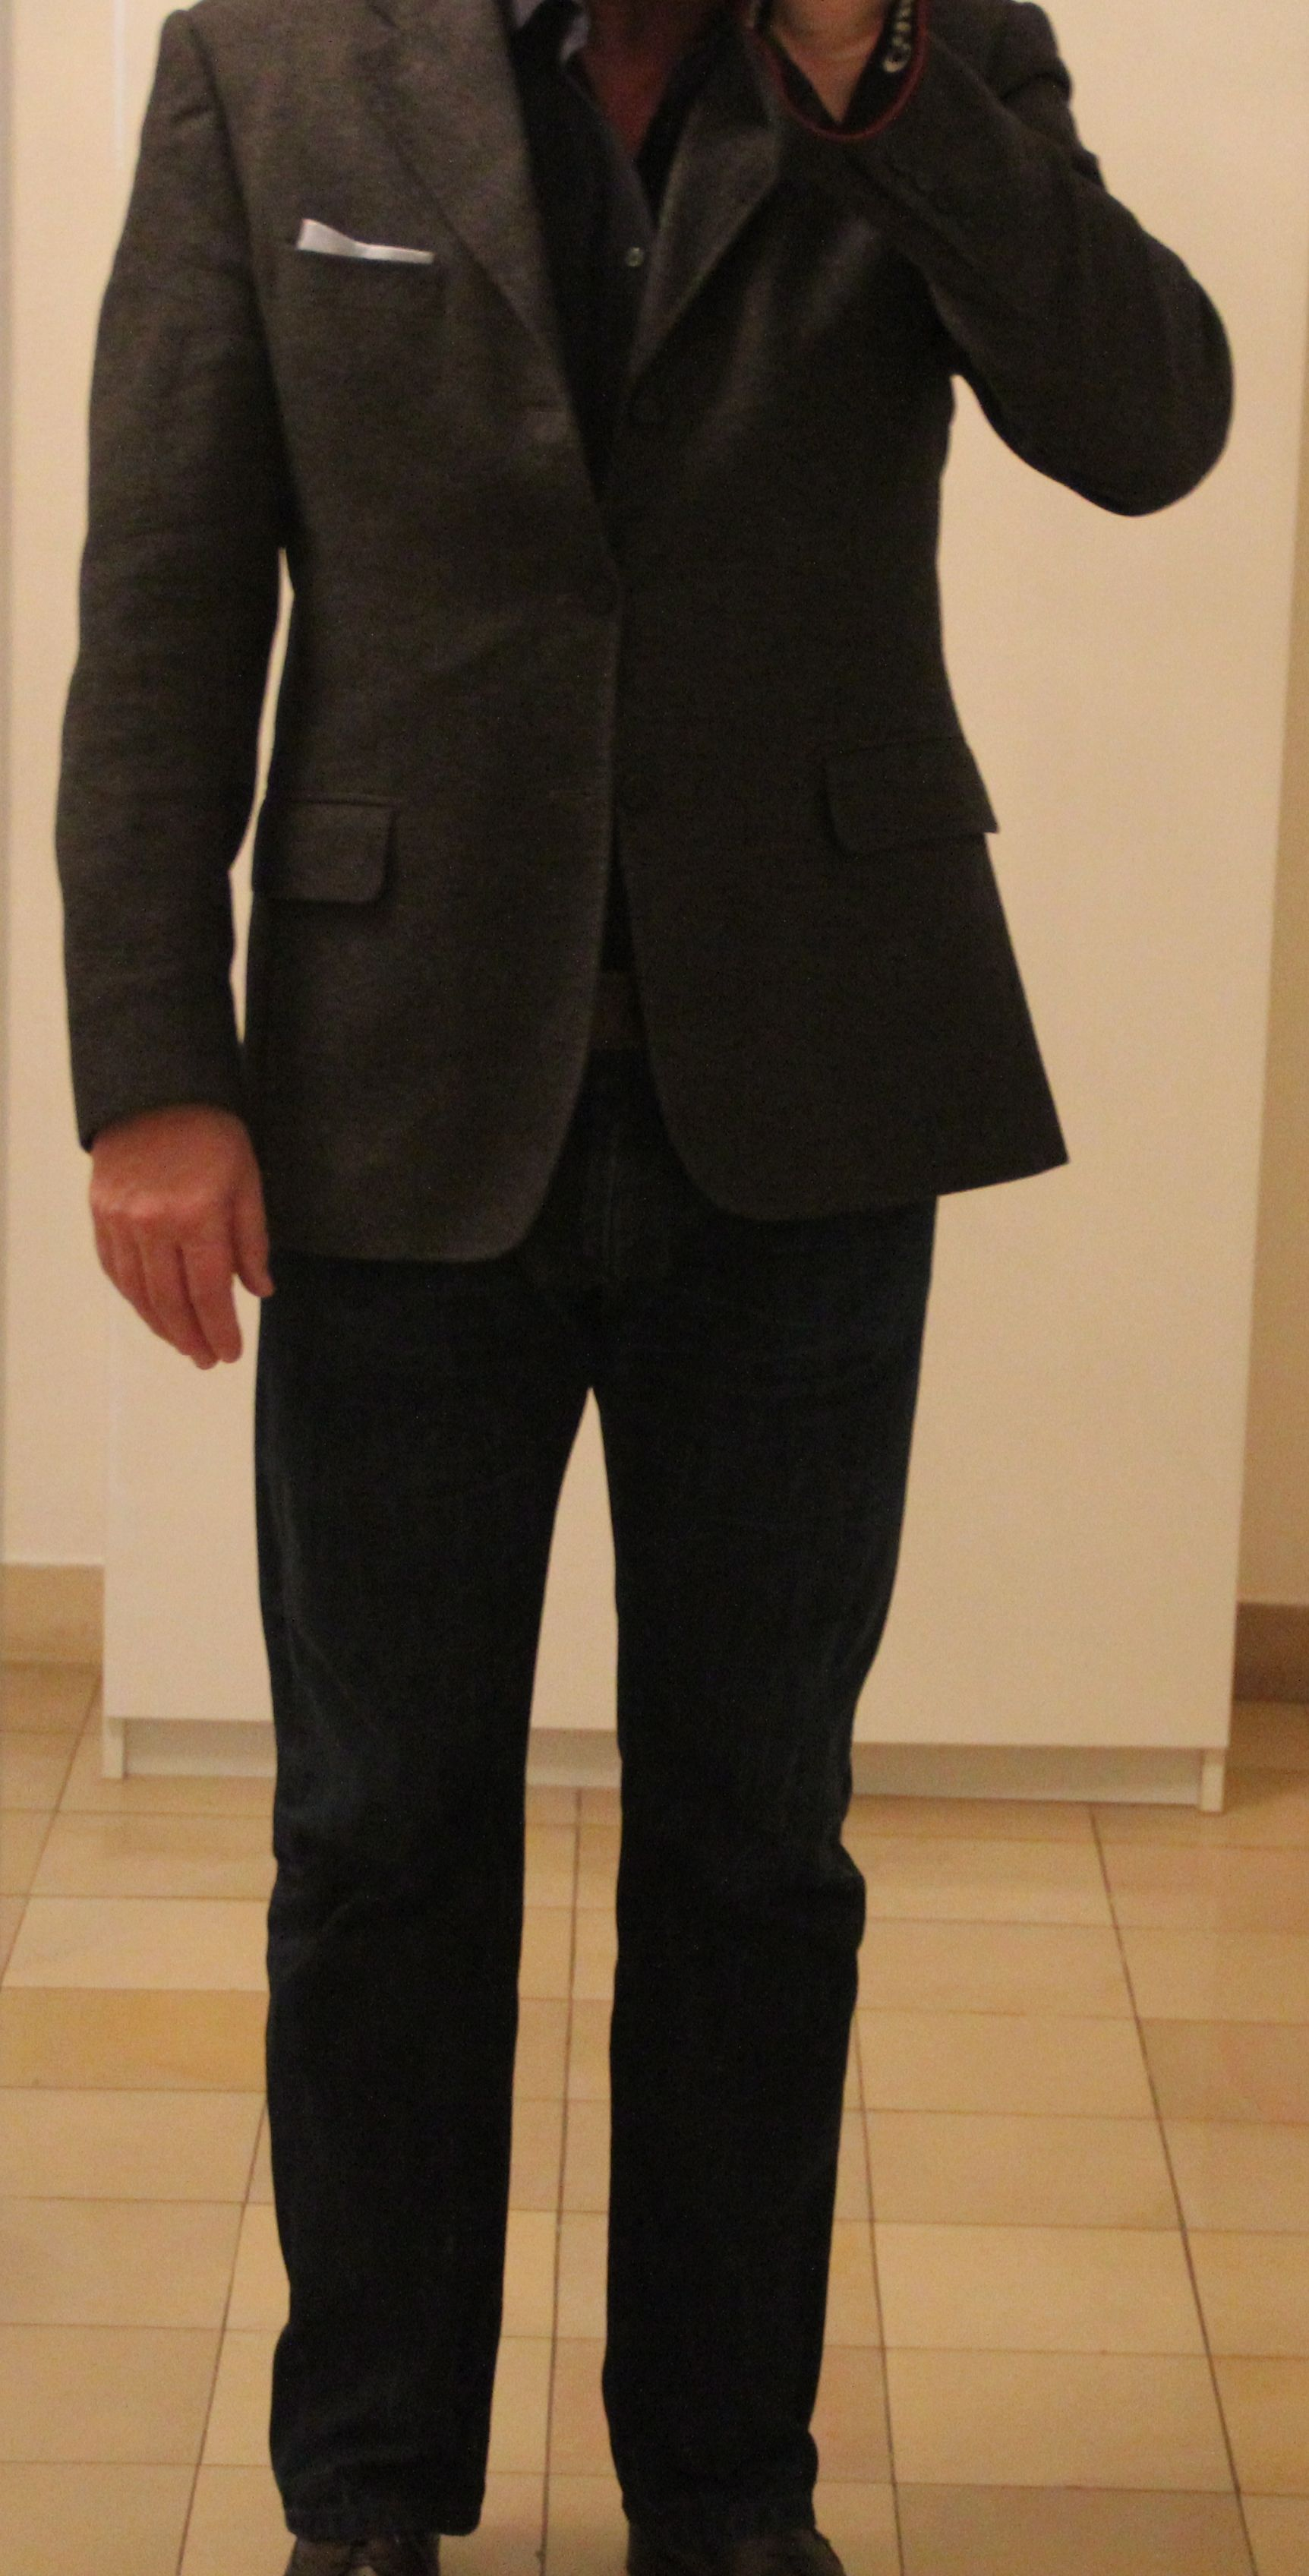 2. Outfit